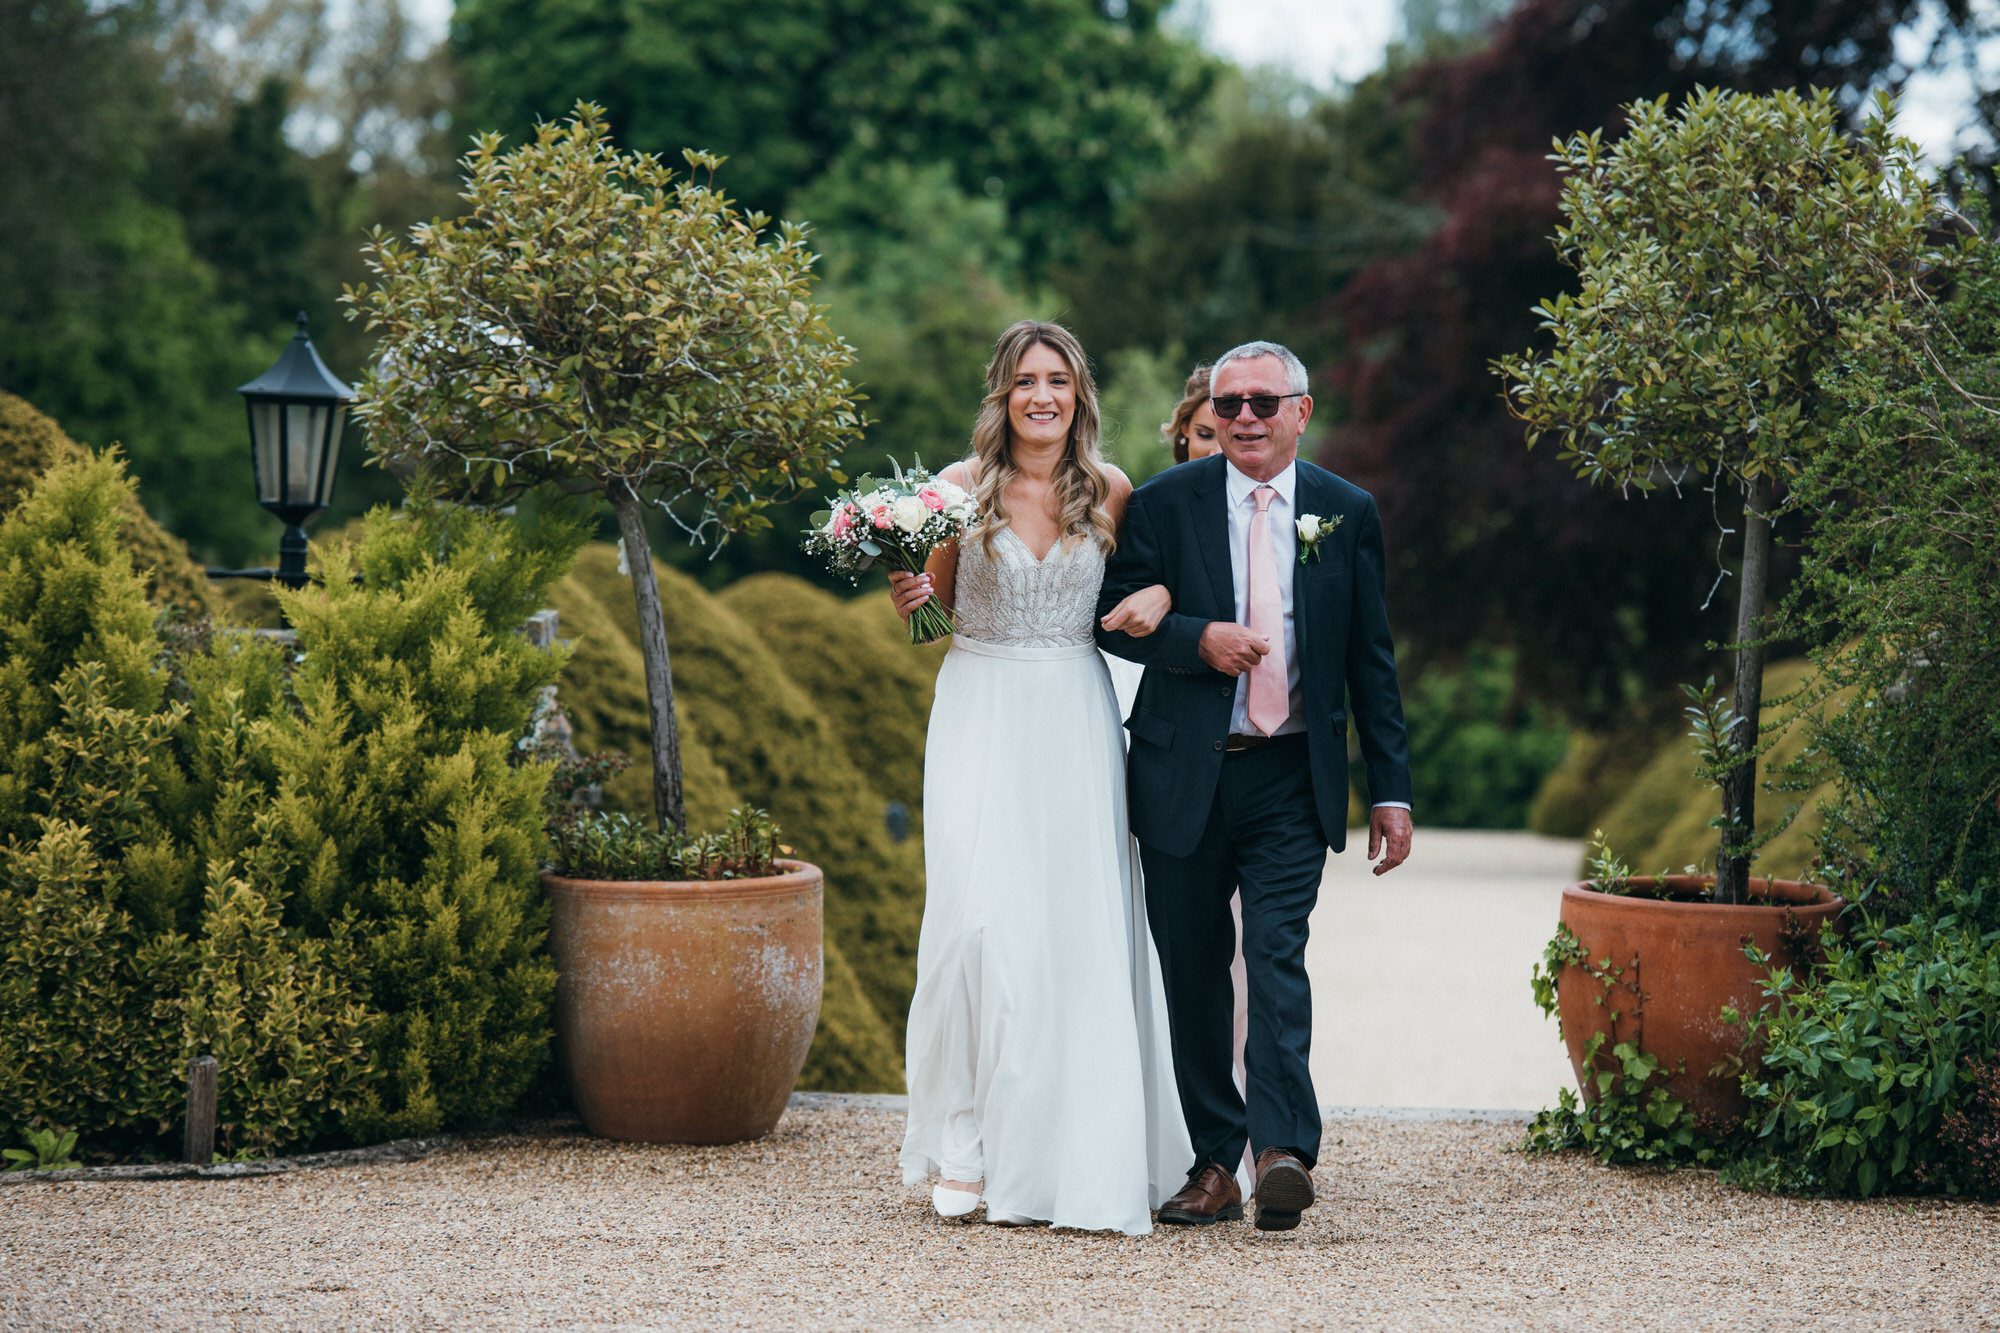 Manor by the lake wedding photographer 18